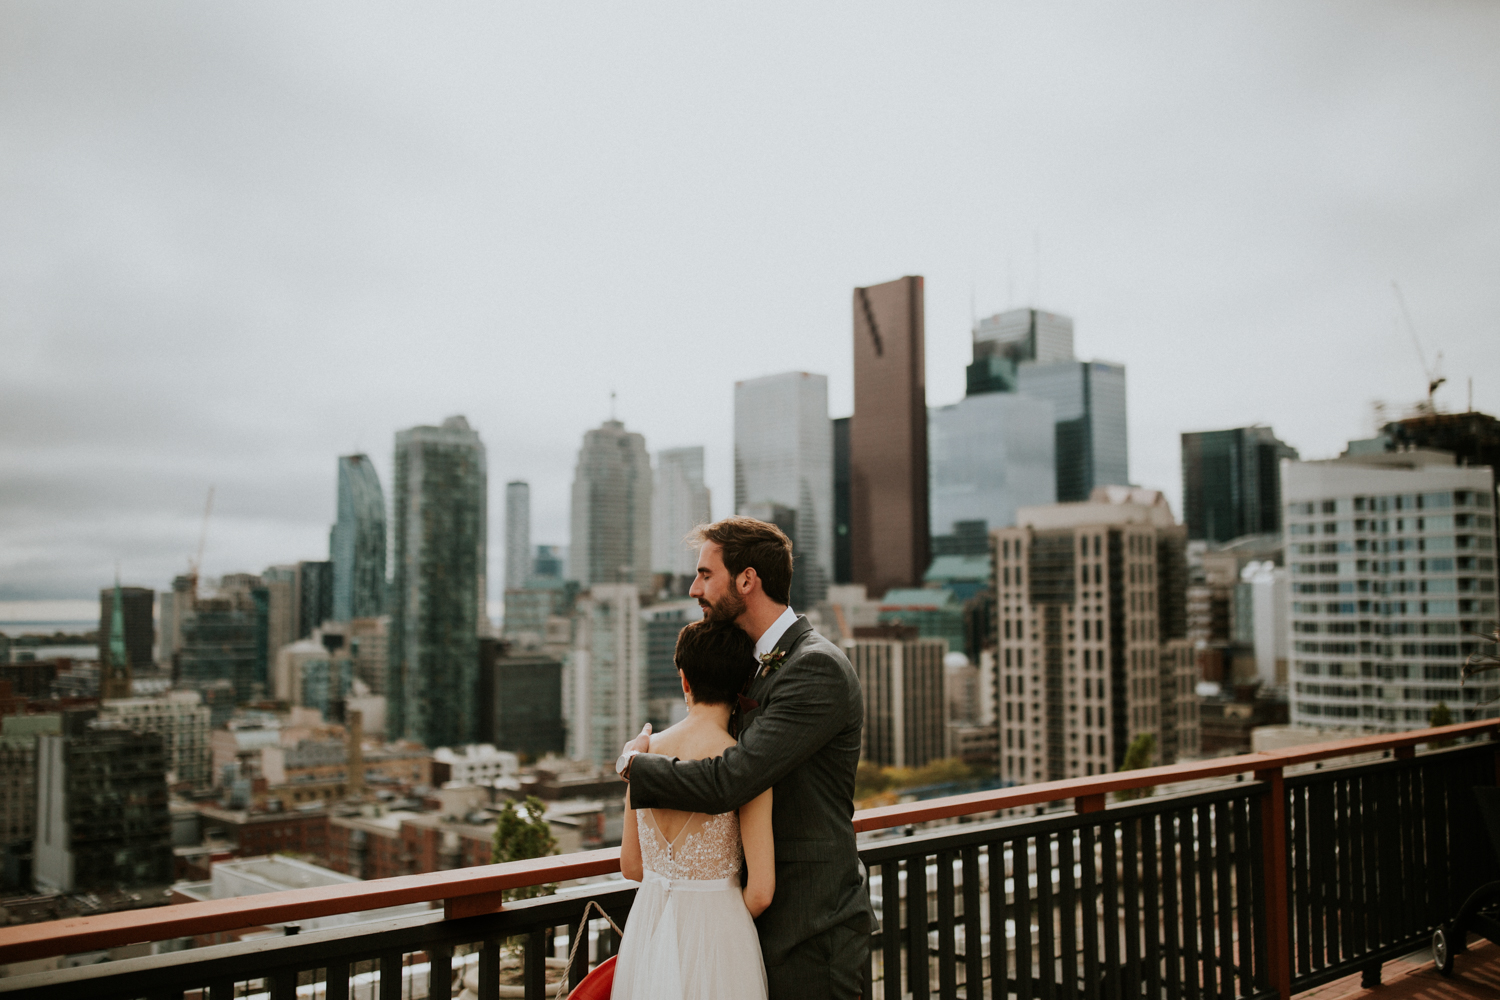 rooftop photo shoot of bride and groom cuddling